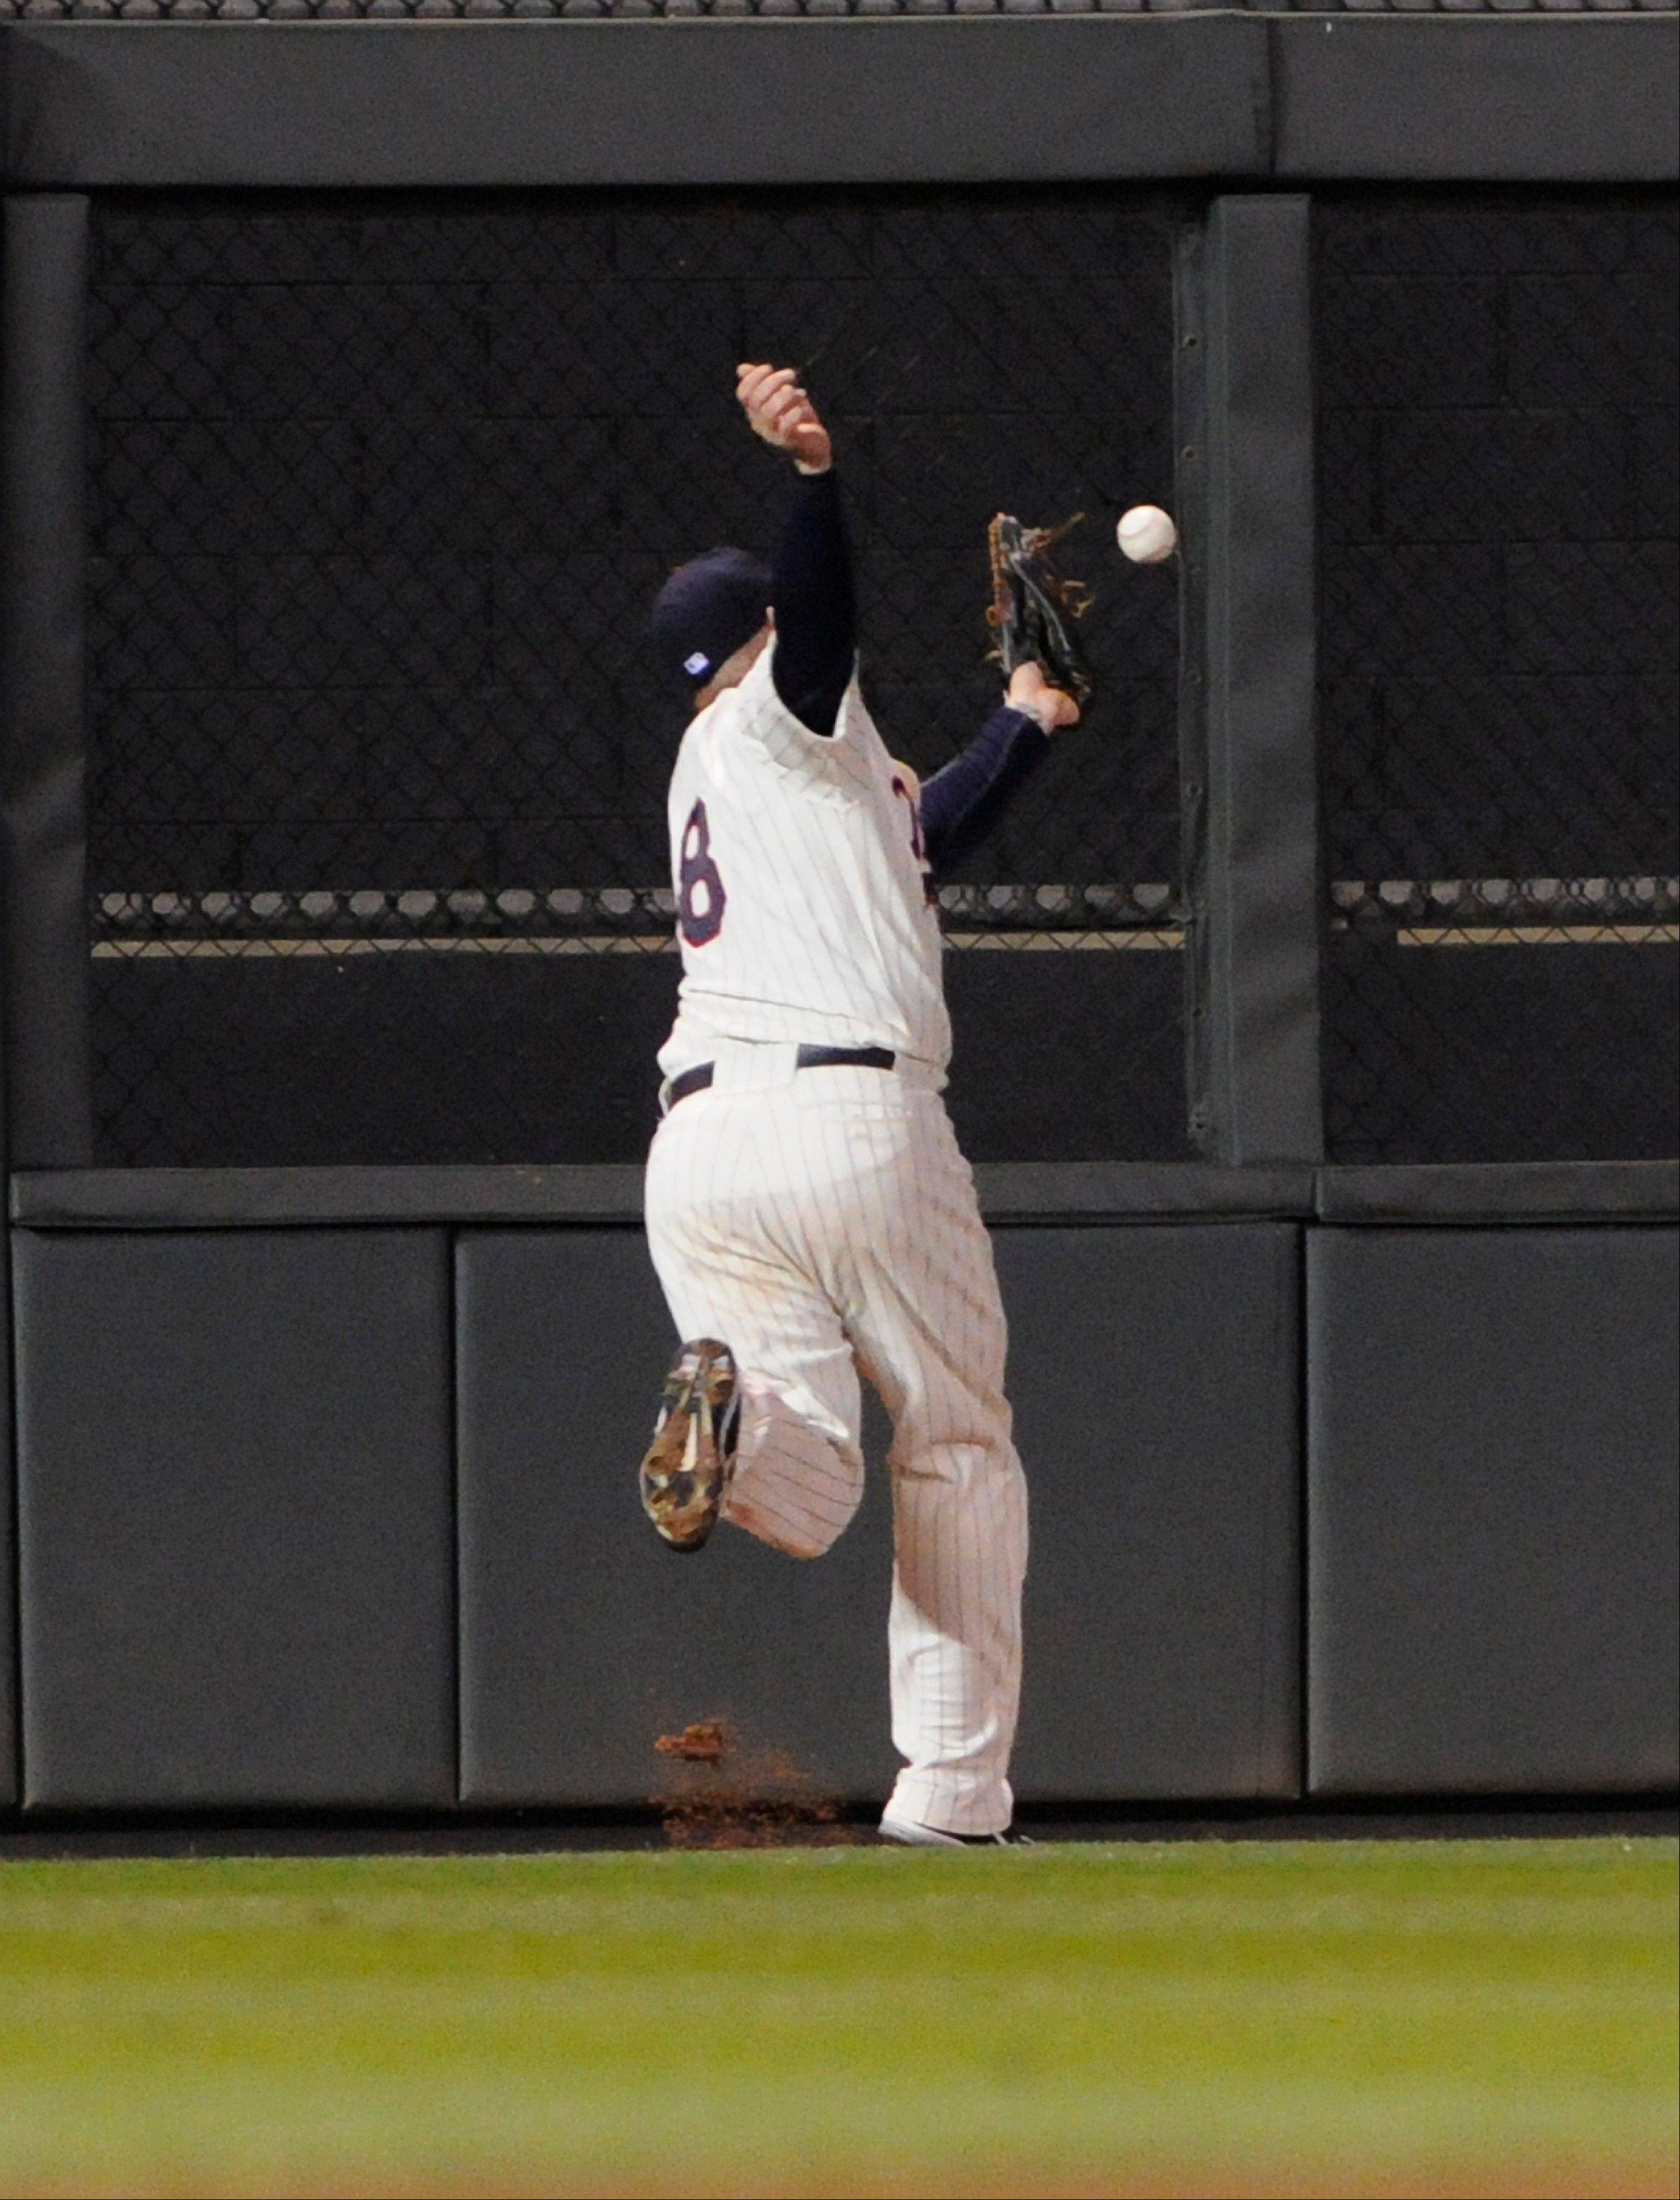 Minnesota Twins left fielder Ryan Doumit commits an error on a ball hit by Kansas City�s Johnny Giavotella in the eighth inning Wednesday at home.